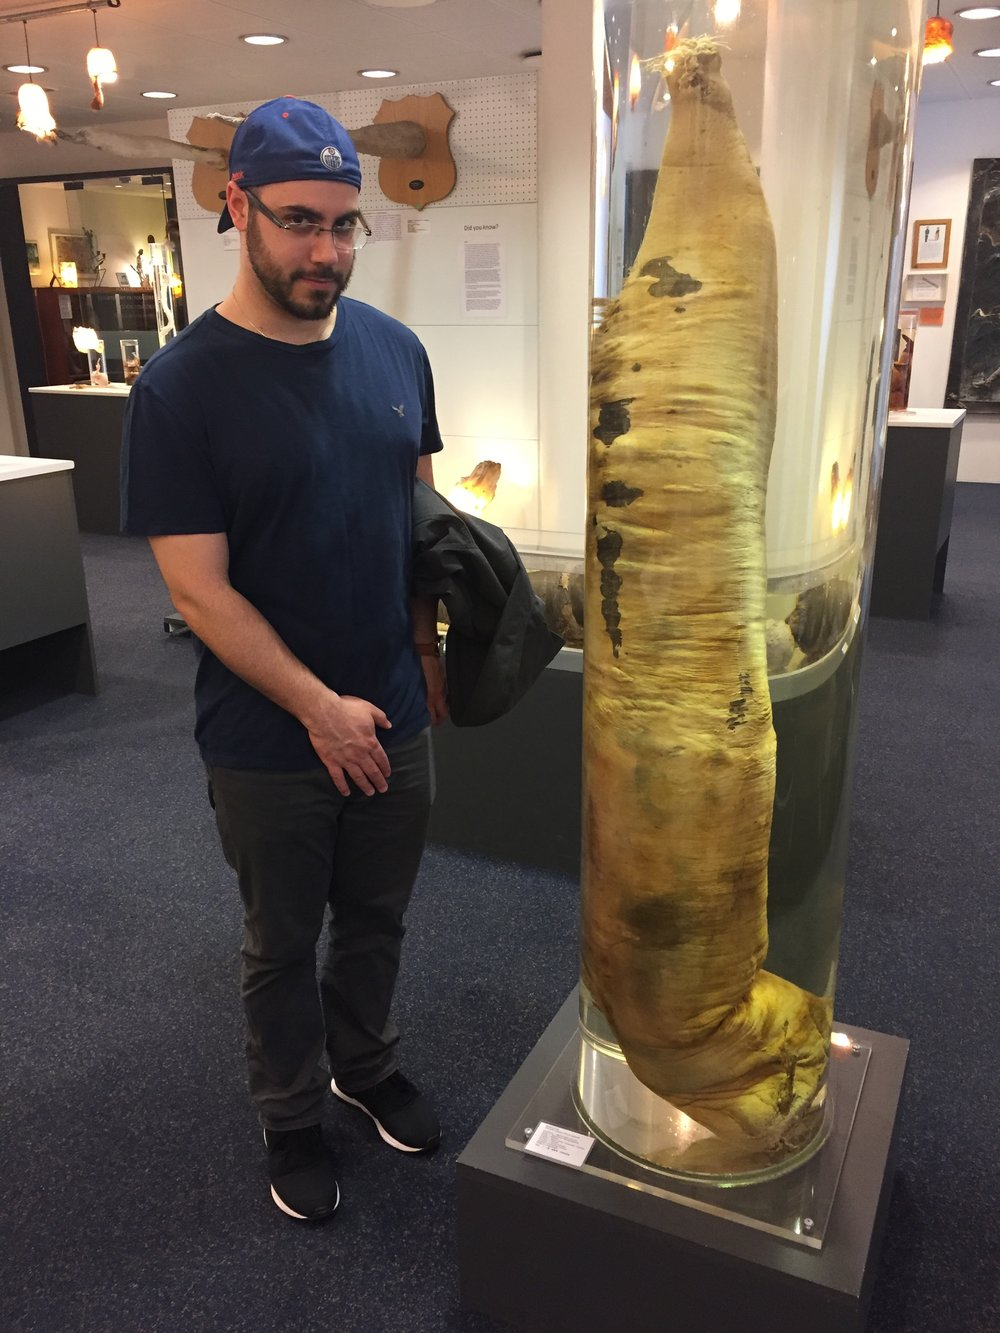 Mark is feeling inadequate next to this whale peen.